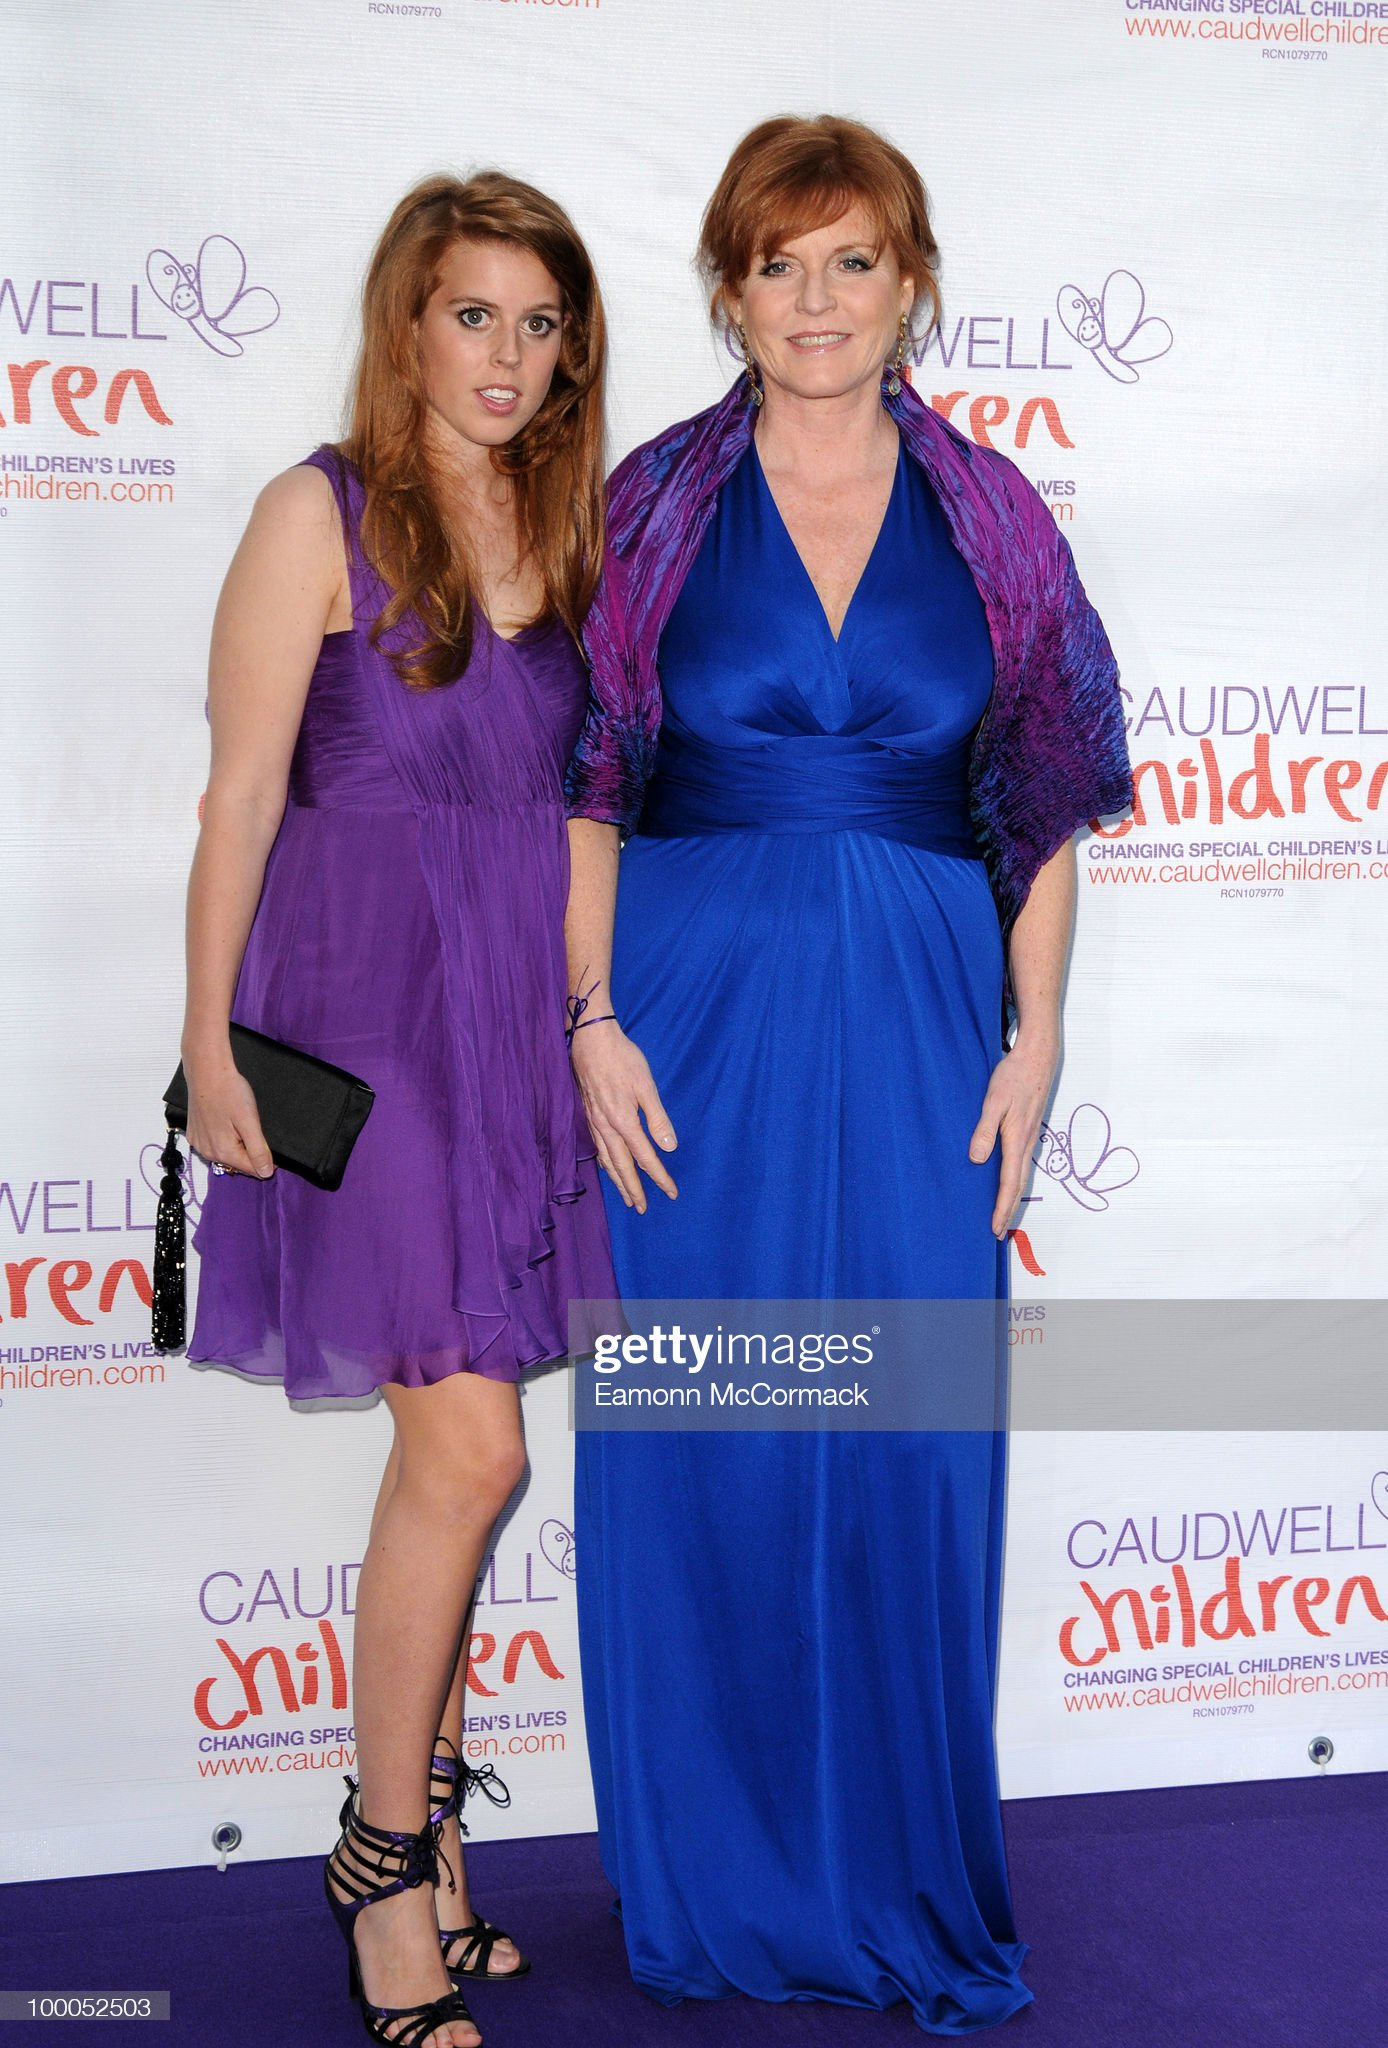 The Caudwell Children Butterfly Ball - Arrivals : News Photo